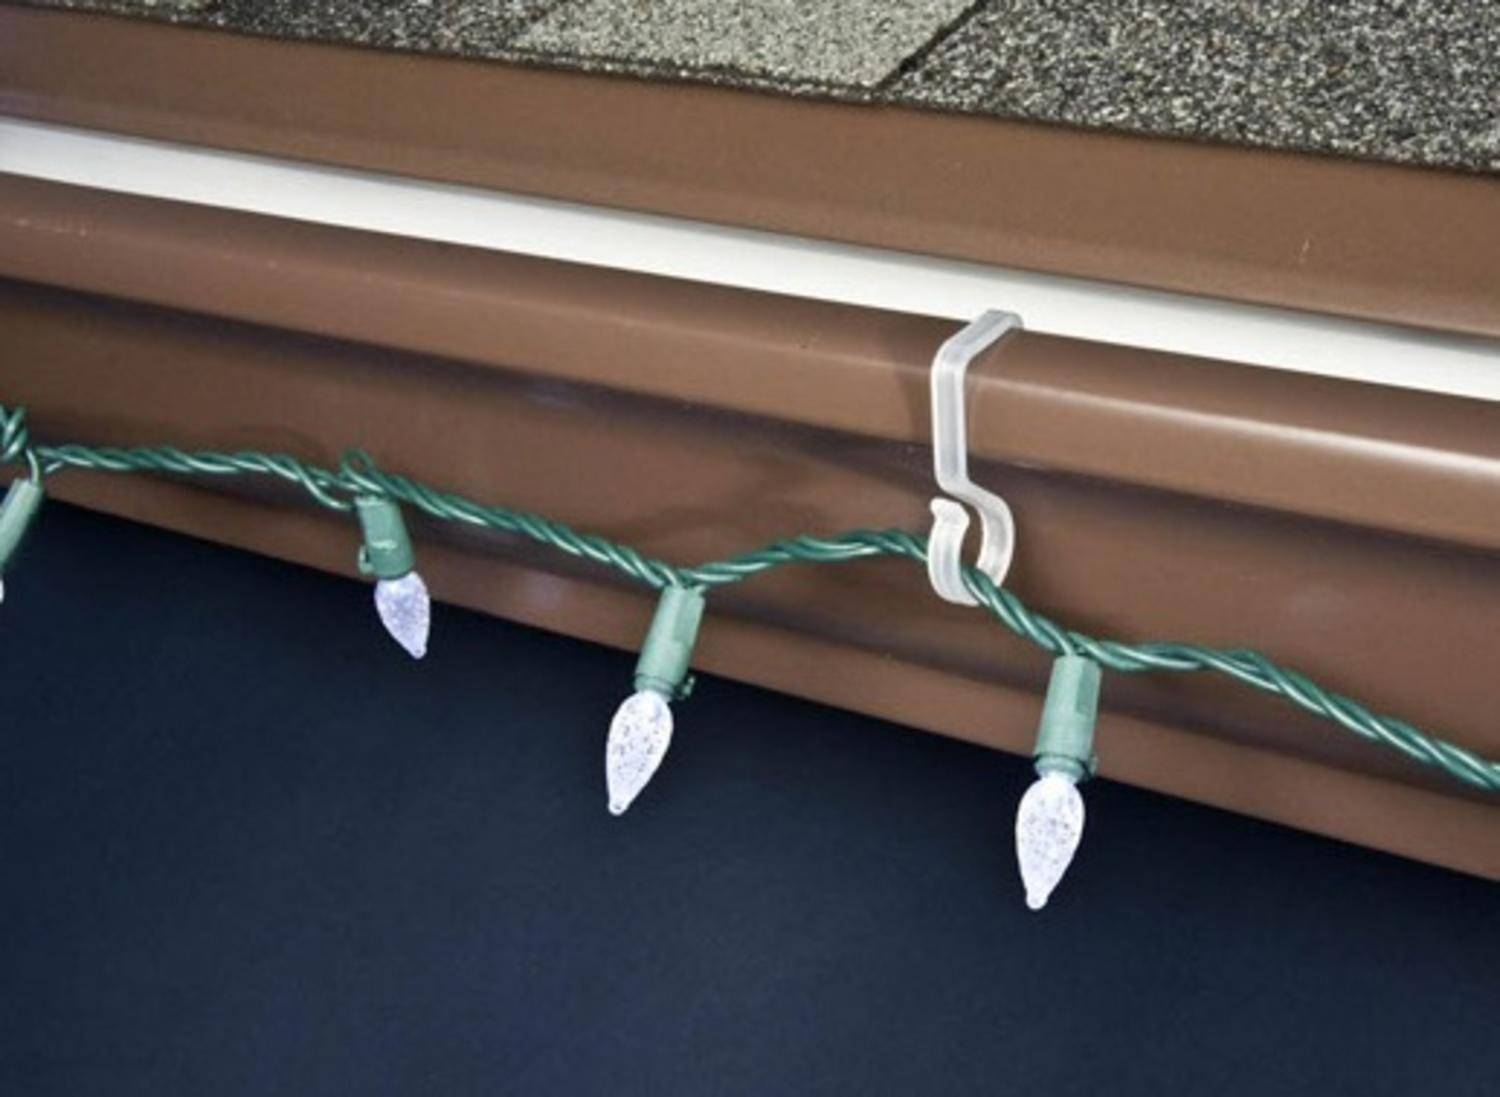 Hanging Hooks Buy 40ct Outdoor Gutter Hooks For Hanging Christmas Lights